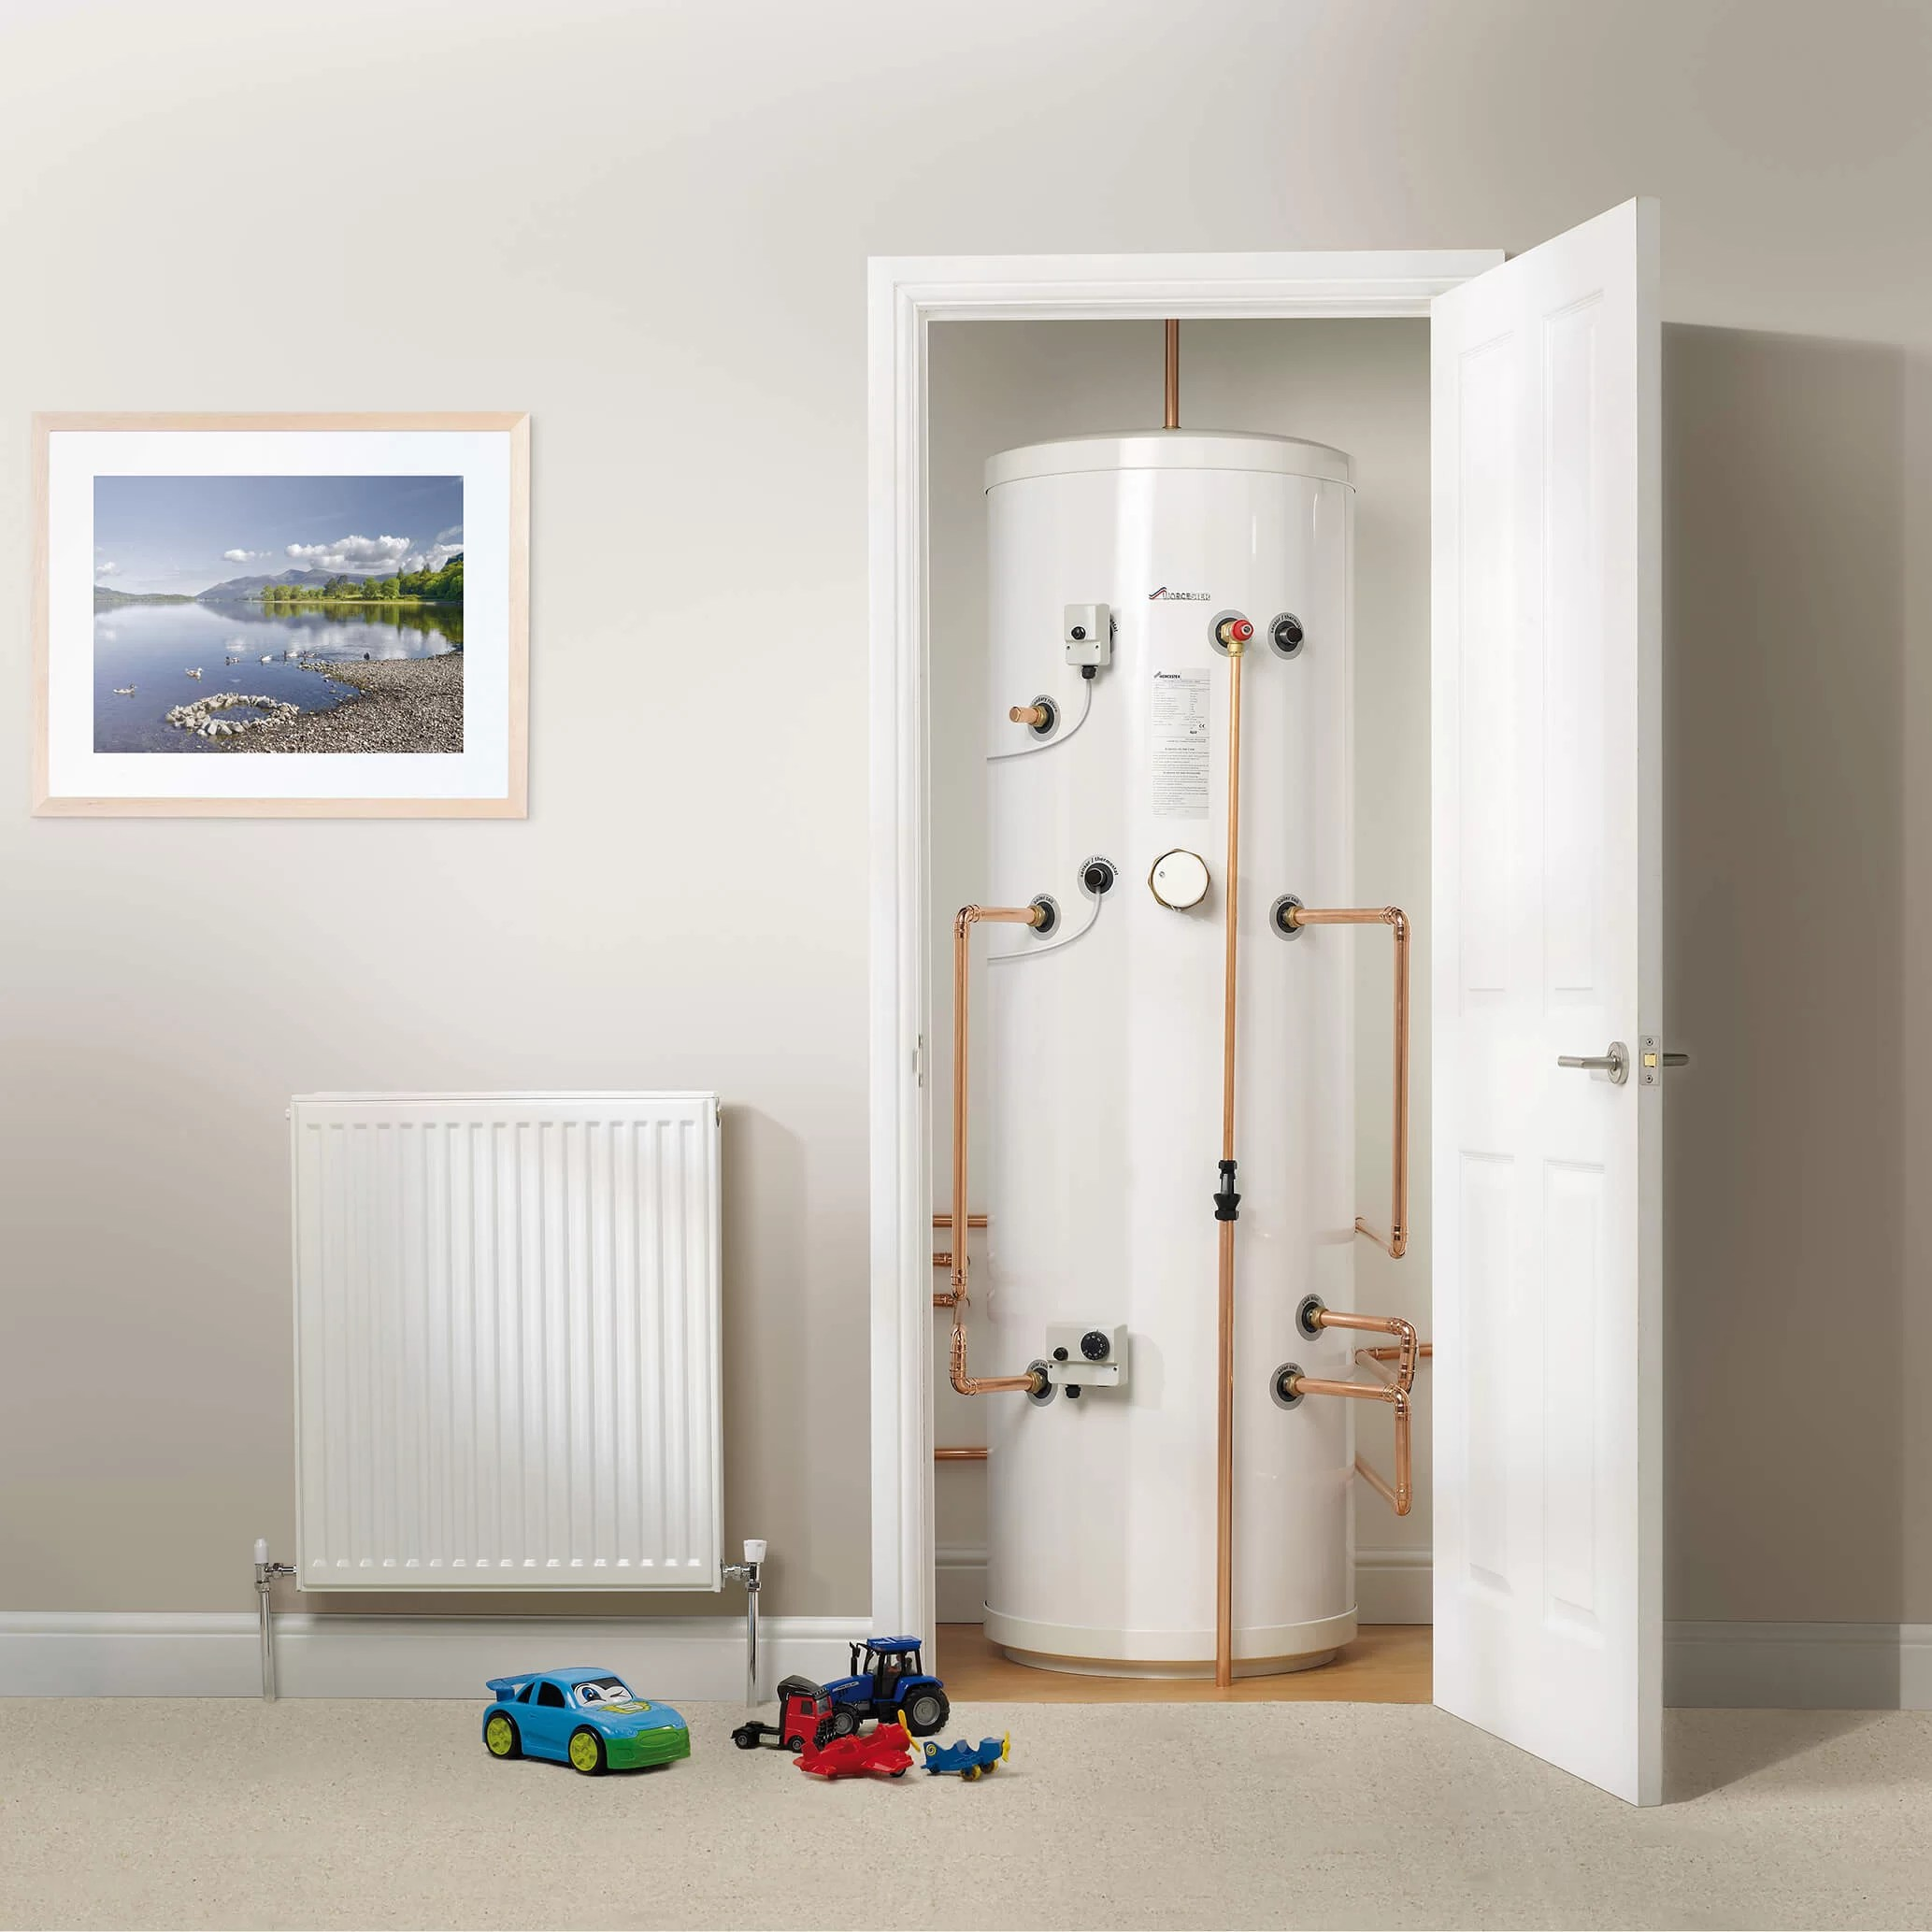 Unvented Hot Water Cylinders Leeds | The Benefits of Installation